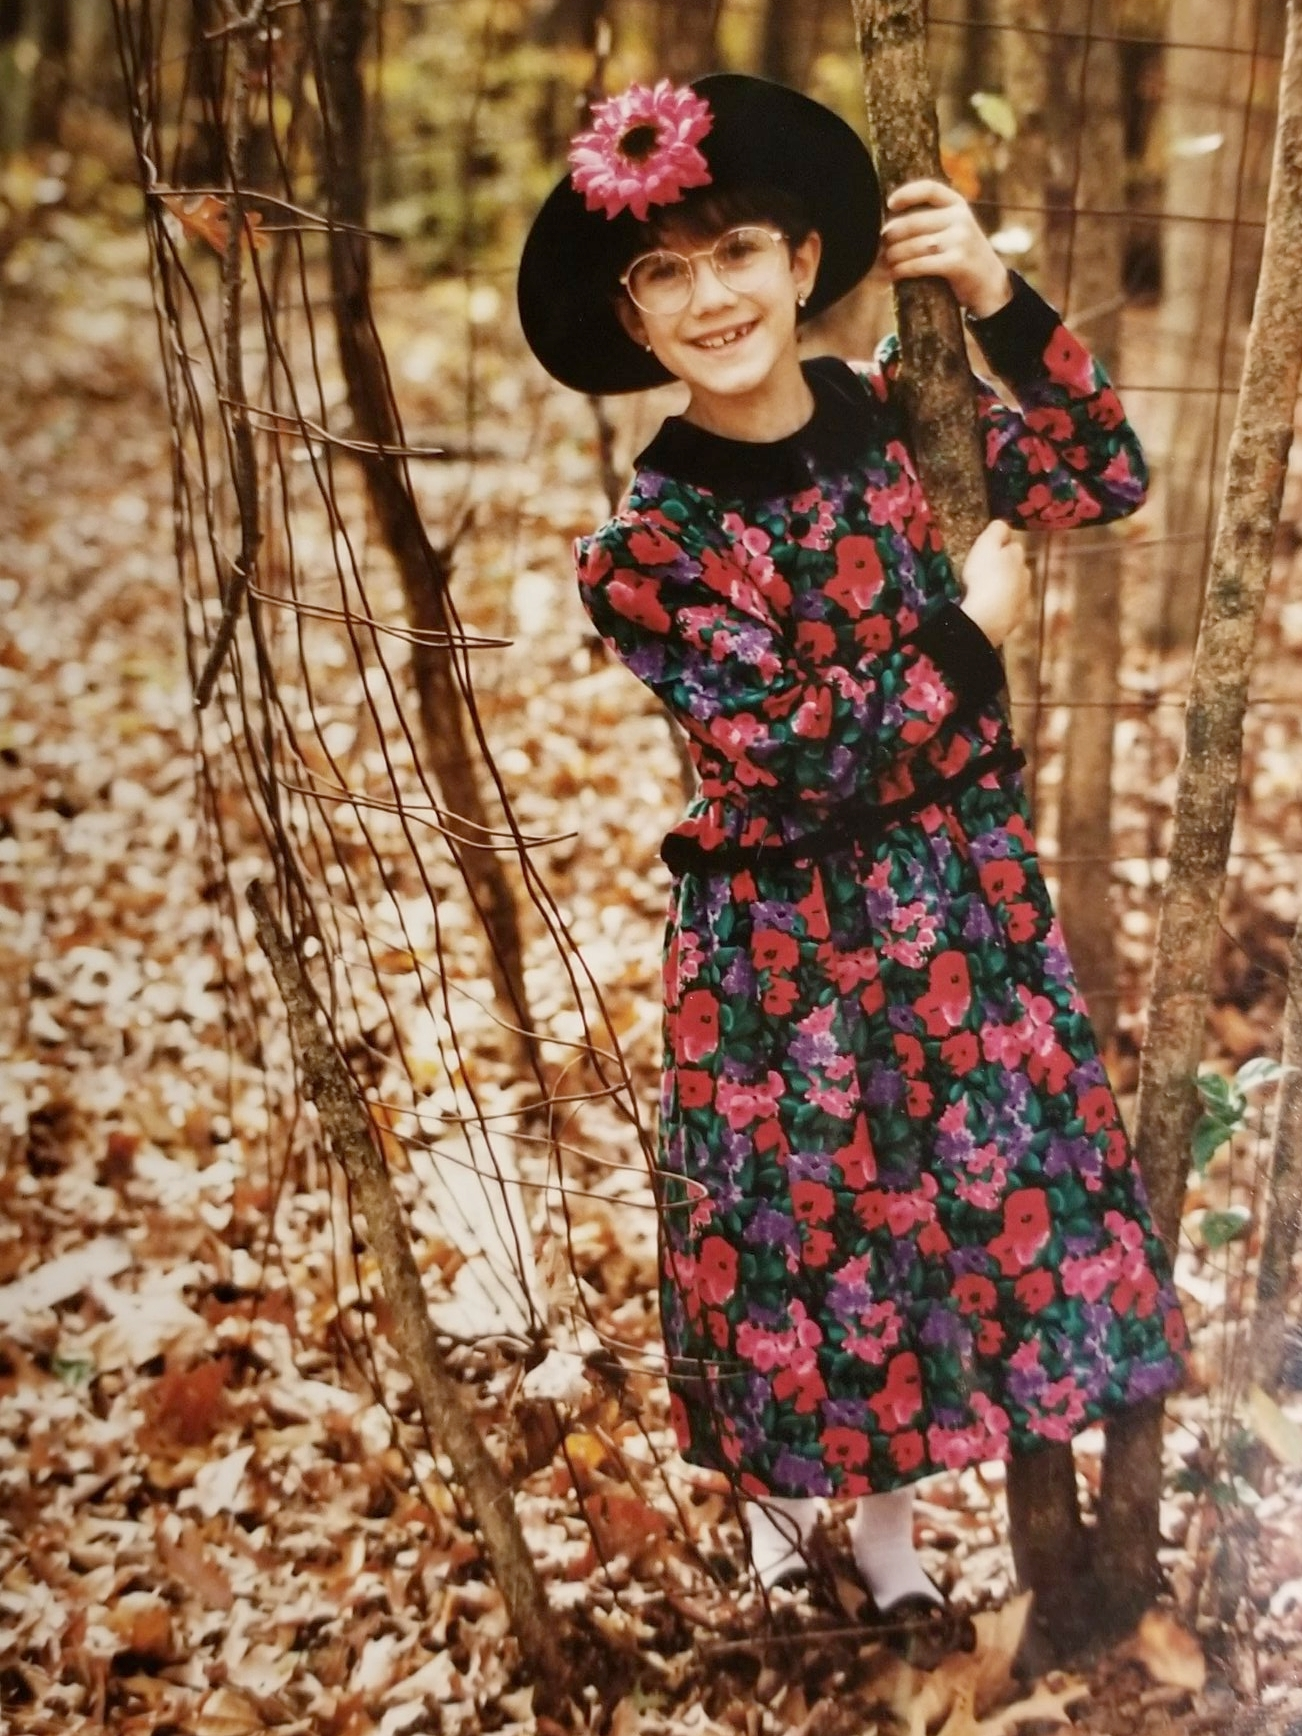 Wild thing - My mom may have styled this shoot but the attitude is all me. You can make your kid wear the fancy outfit but your kid is gonna want to get her picture taken with the rusty chicken wire